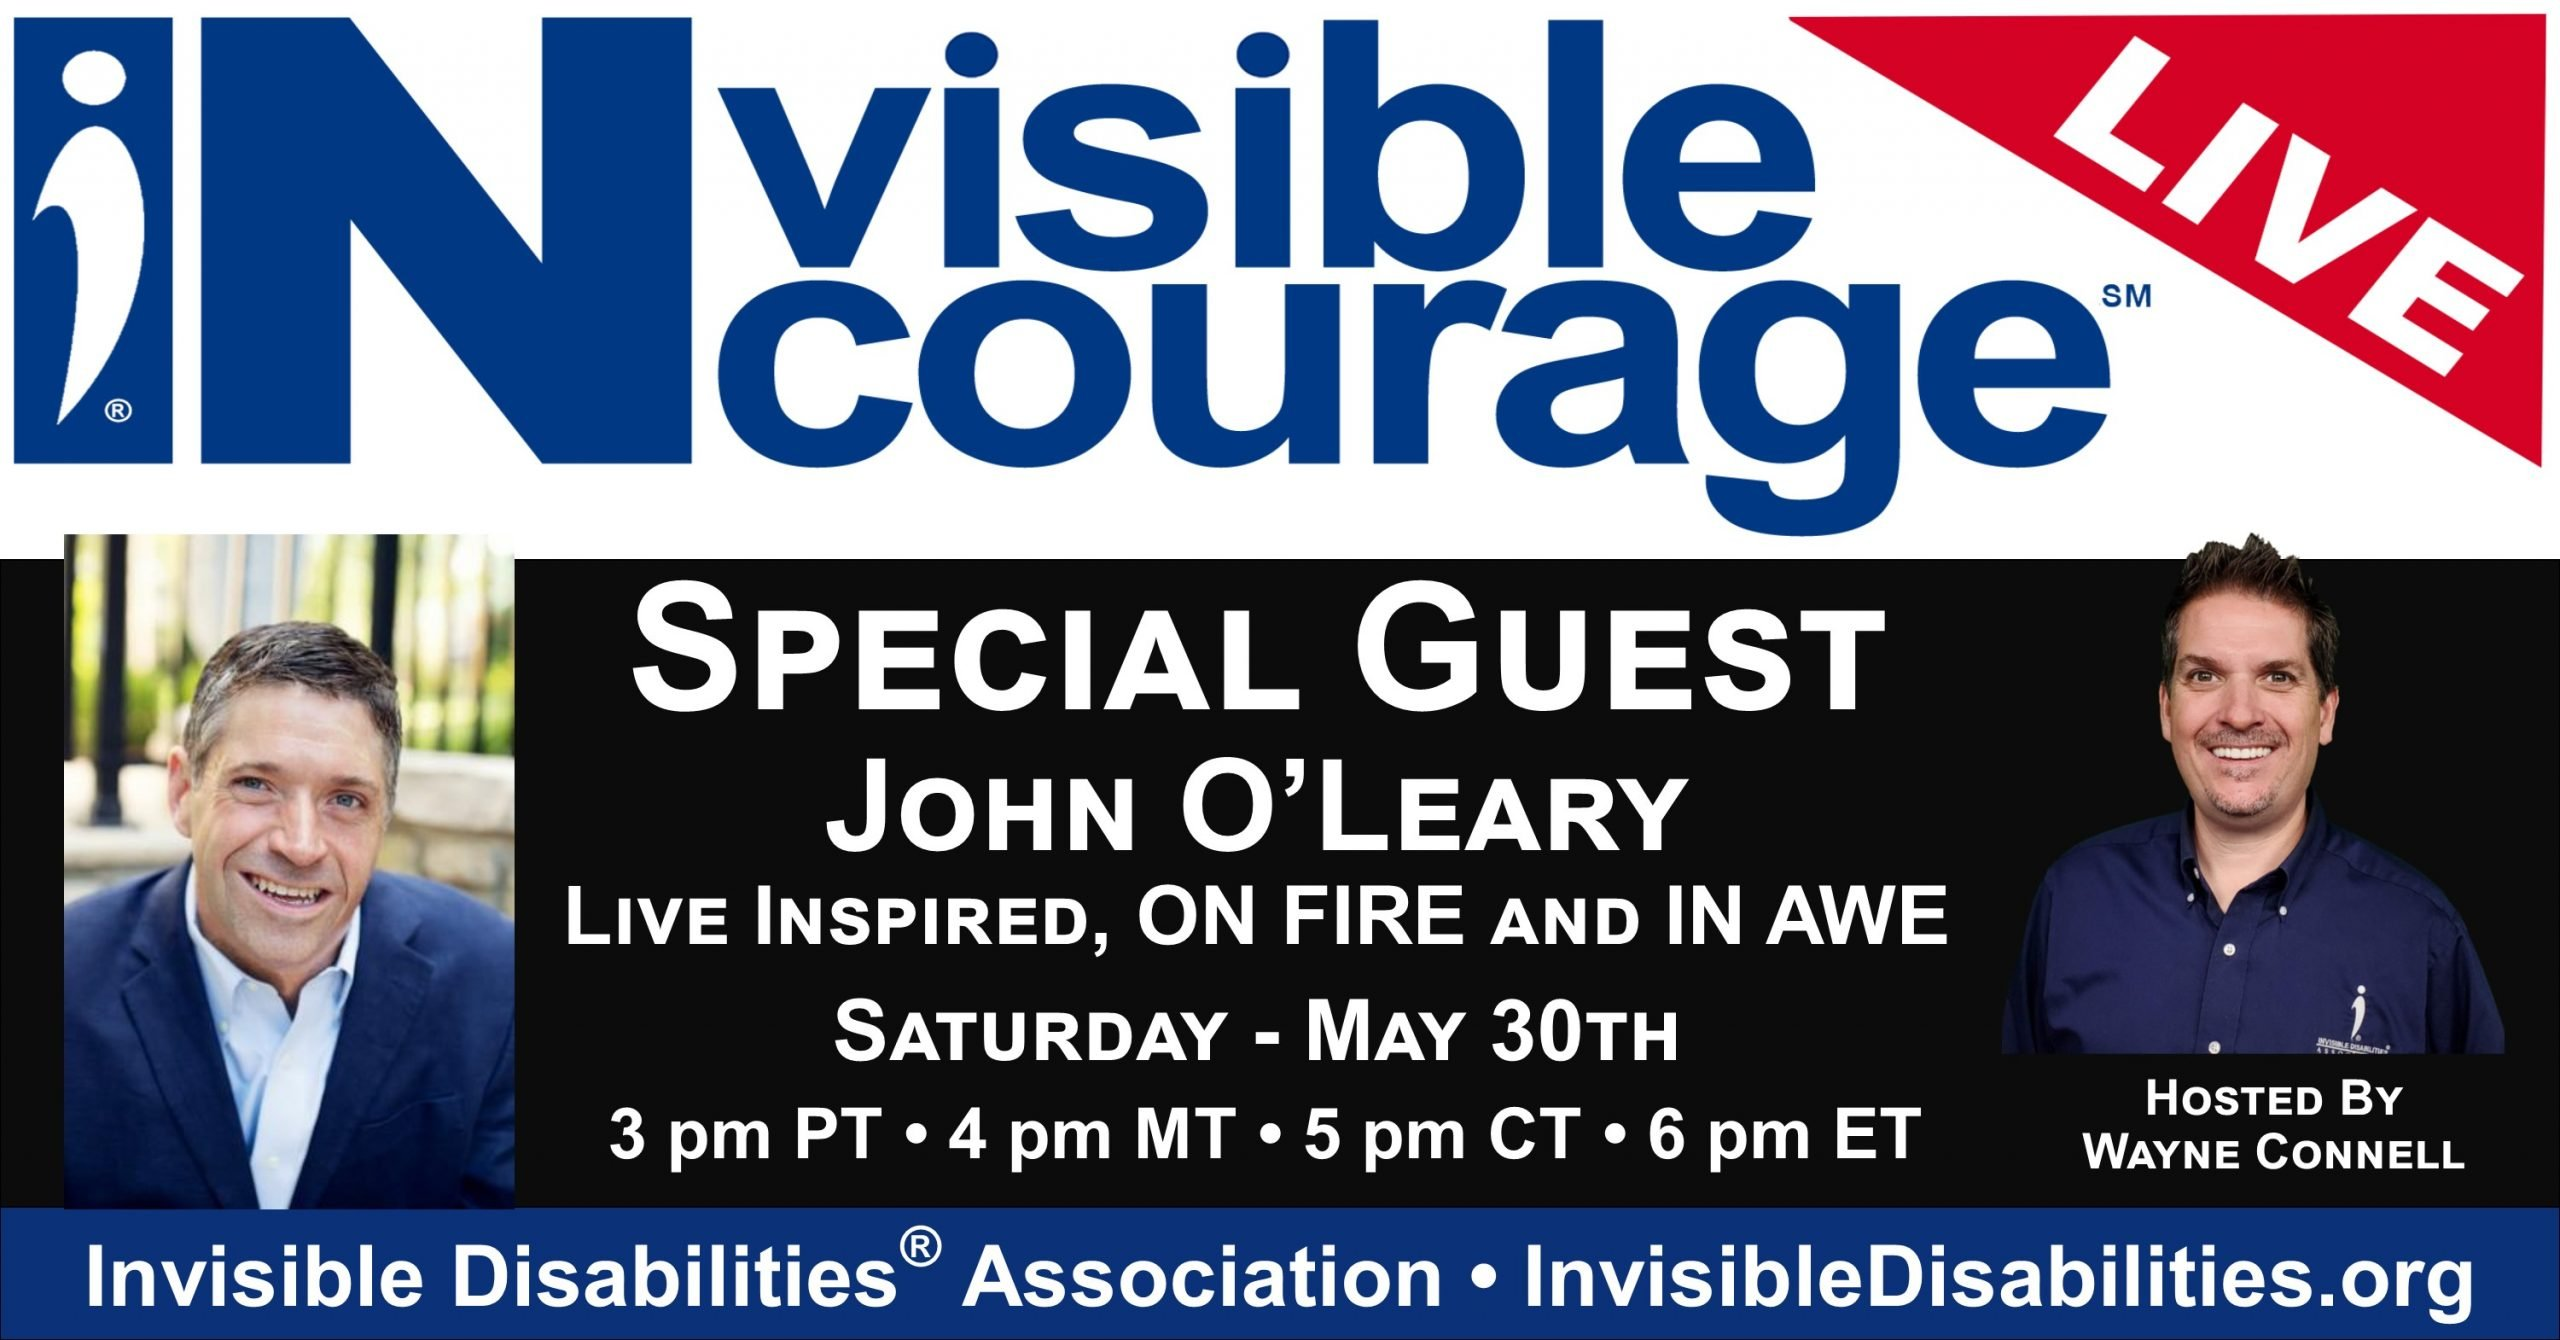 InVisible Encourage Live with John O'Leary - Live Inspired, On Fire and In Awe - Invisible Disabilities Association